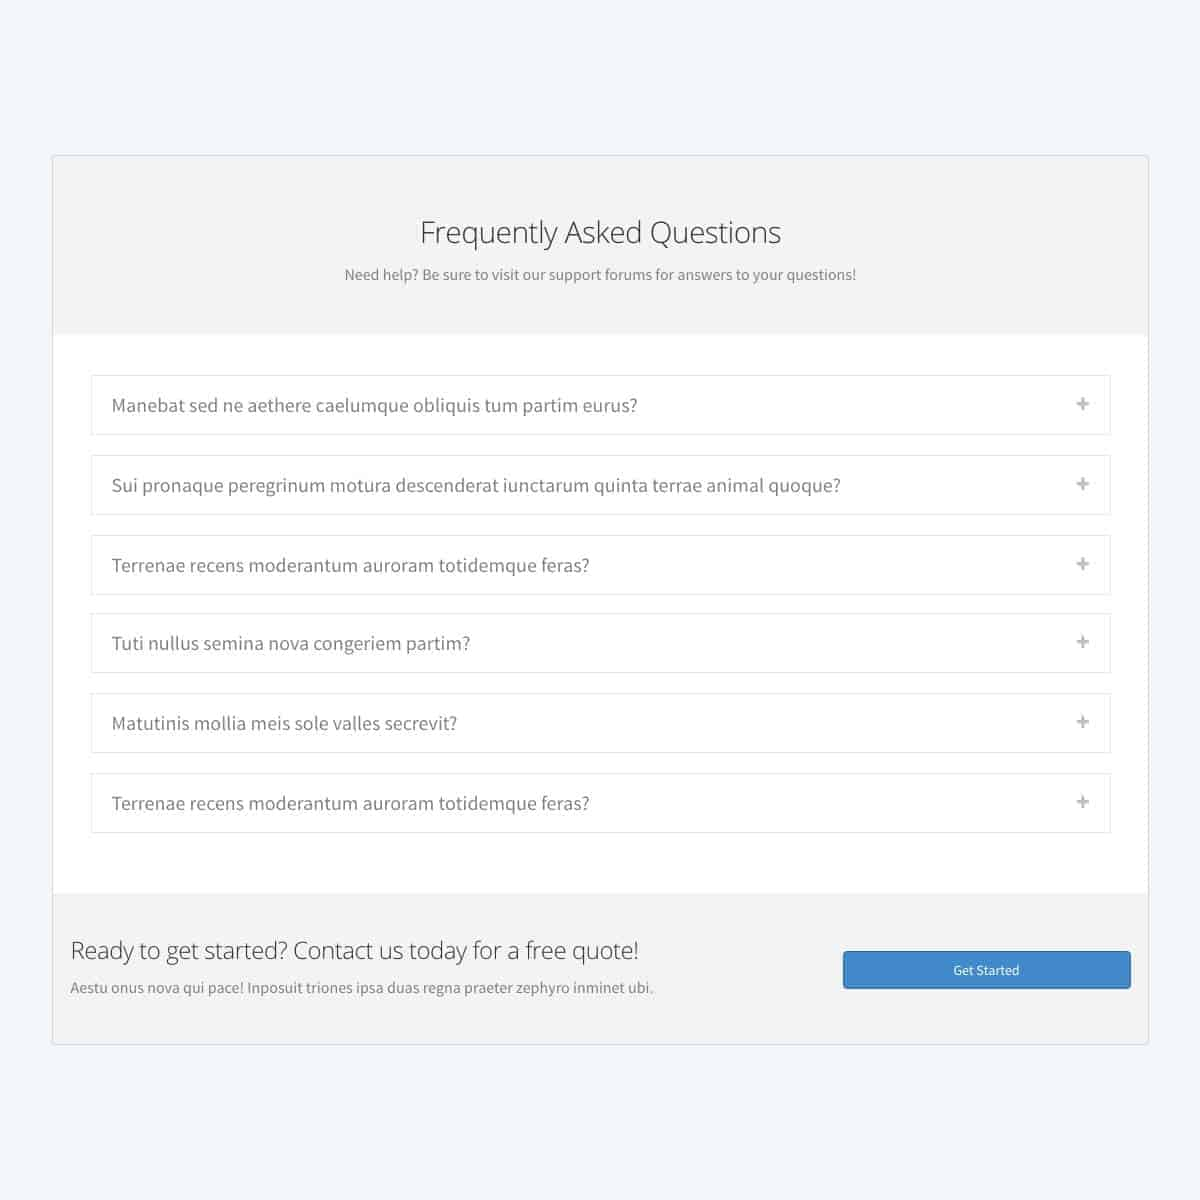 frequently-asked-questions-template